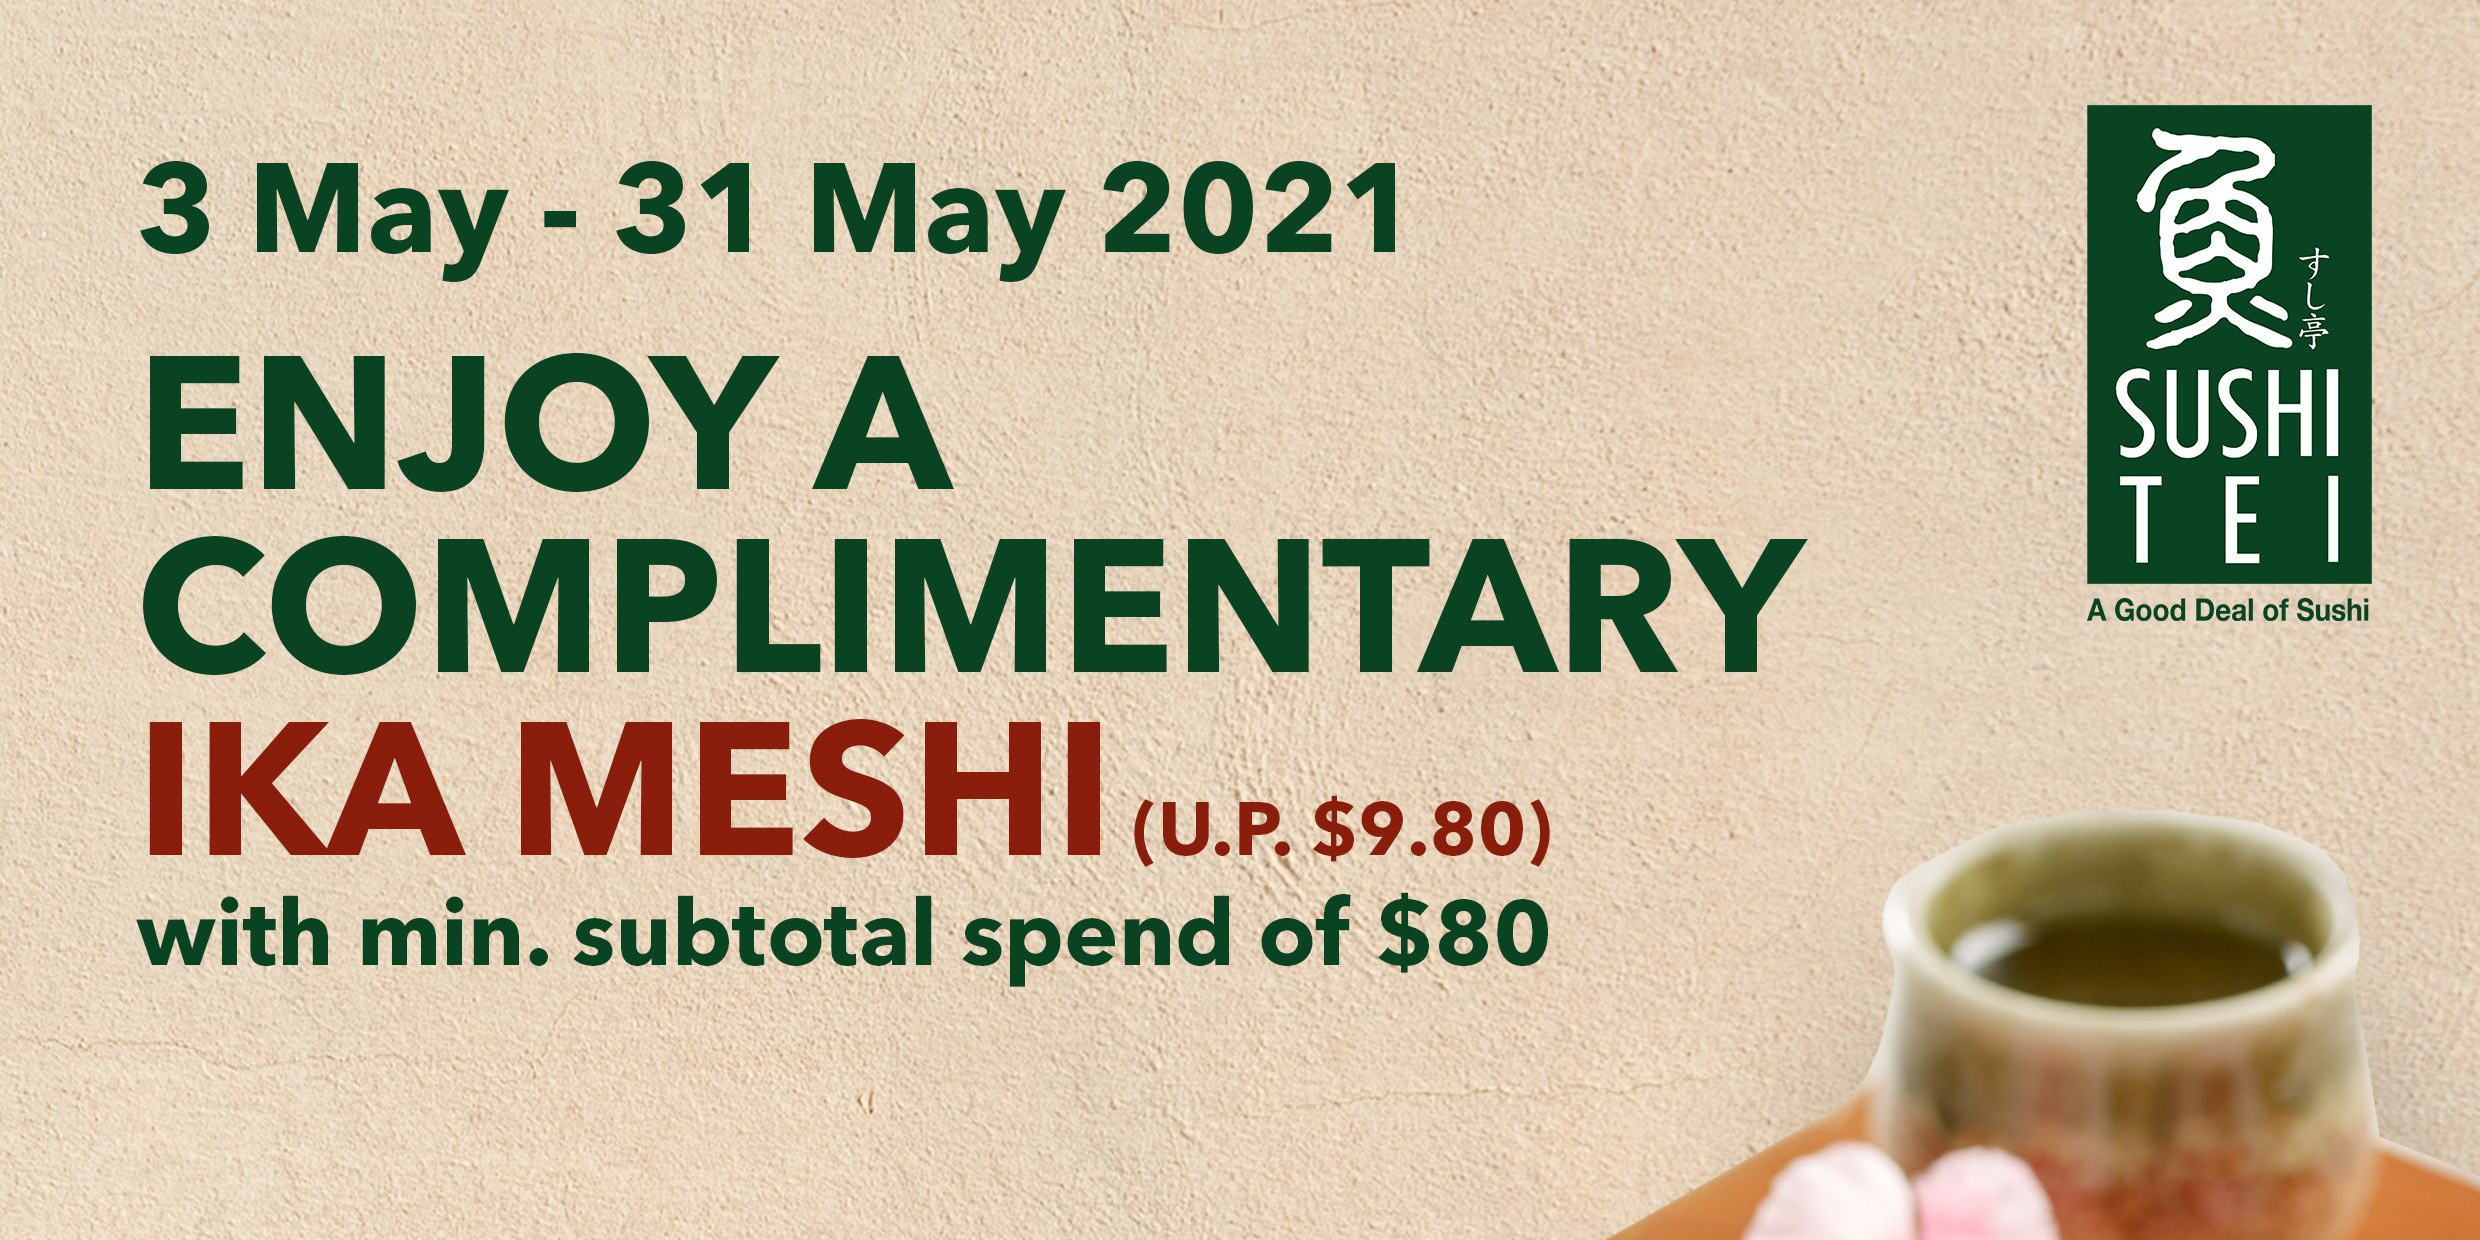 Free dish* when you dine at Sushi Tei from now till 31 May 2021